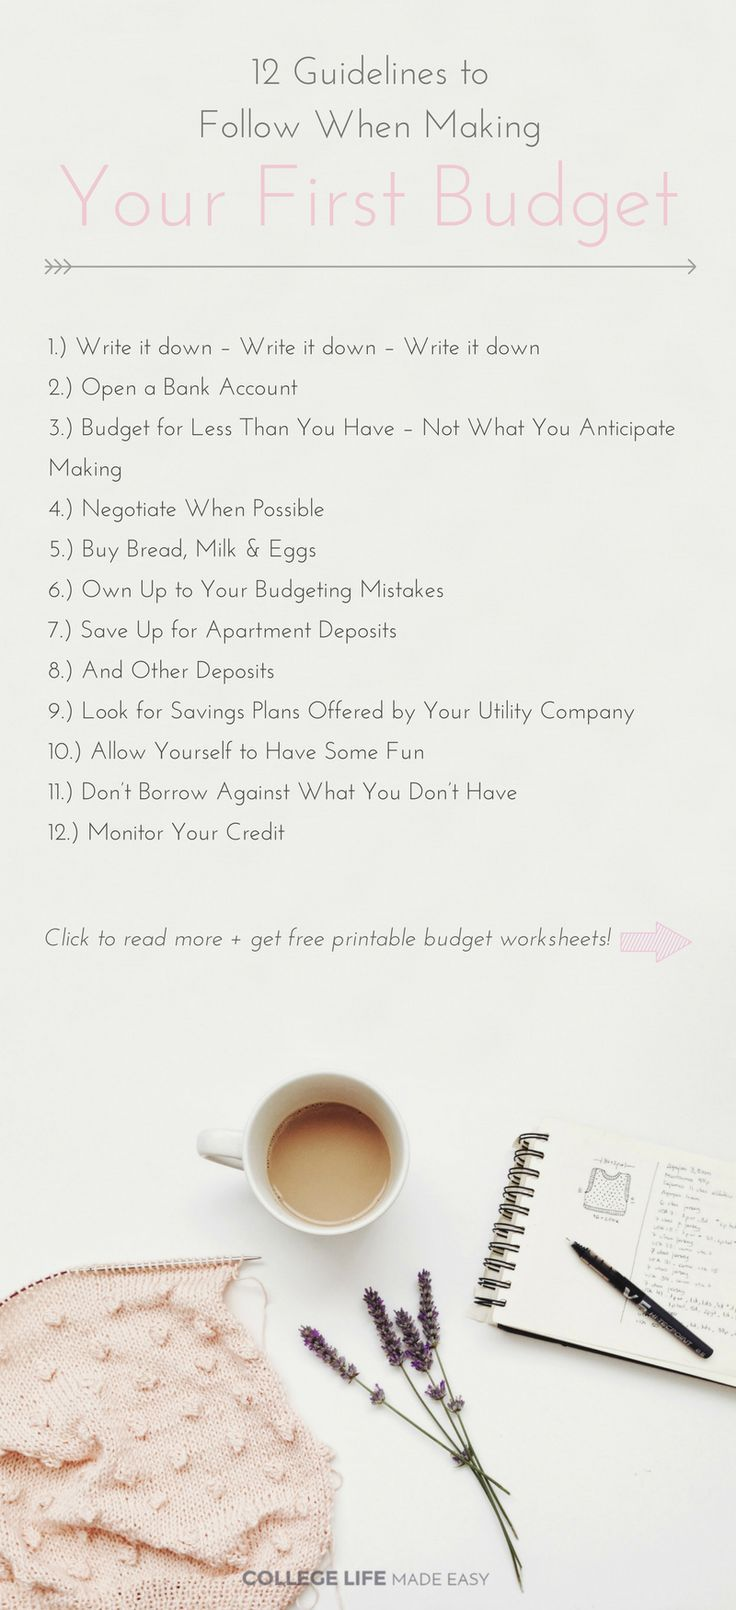 Budgeting in College   Learn to Budget   How to Budget Guide for Beginners   Budgeting for Beginners   Budget Tips & Tricks   Budgeting Tips & Tricks   Free Budget Printables   Free Budget Worksheets   Living on a Budget   College Student Budget Tips   Making Your First Budget   Monthly Budget Worksheets Printables   Saving Money   Budgeting Ideas   Frugal Living   Personal Finance   Articles Posts   Awesome Printable via @esycollegelife